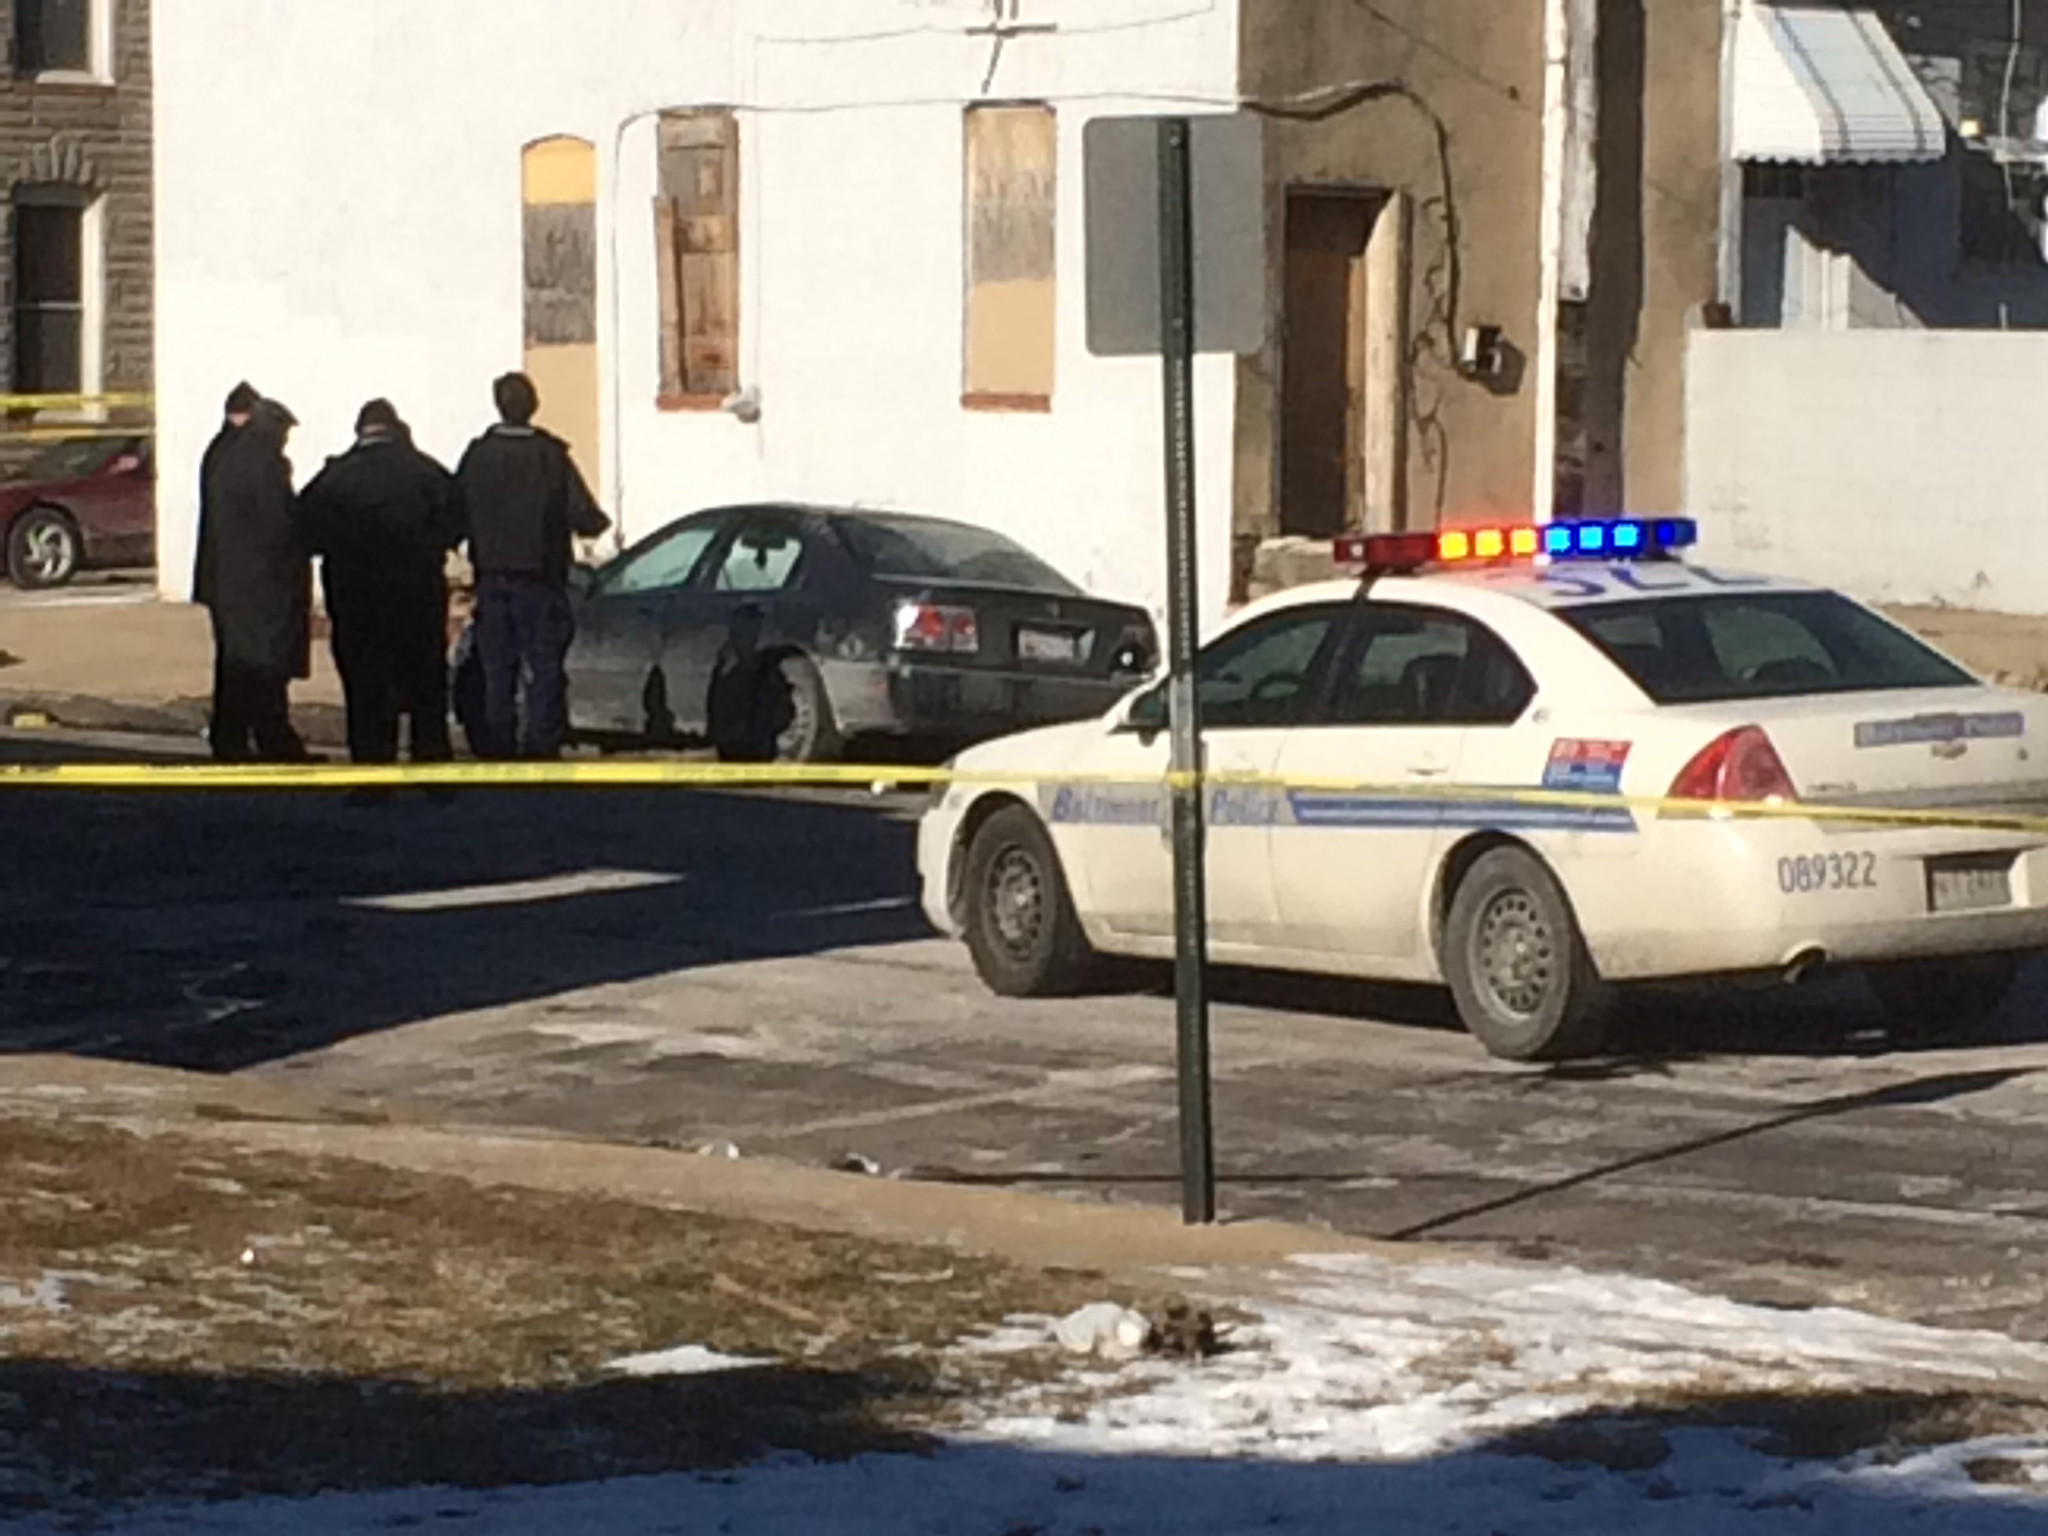 Baltimore Police investigate a car where a man and woman were found dead in Southwest Baltimore.